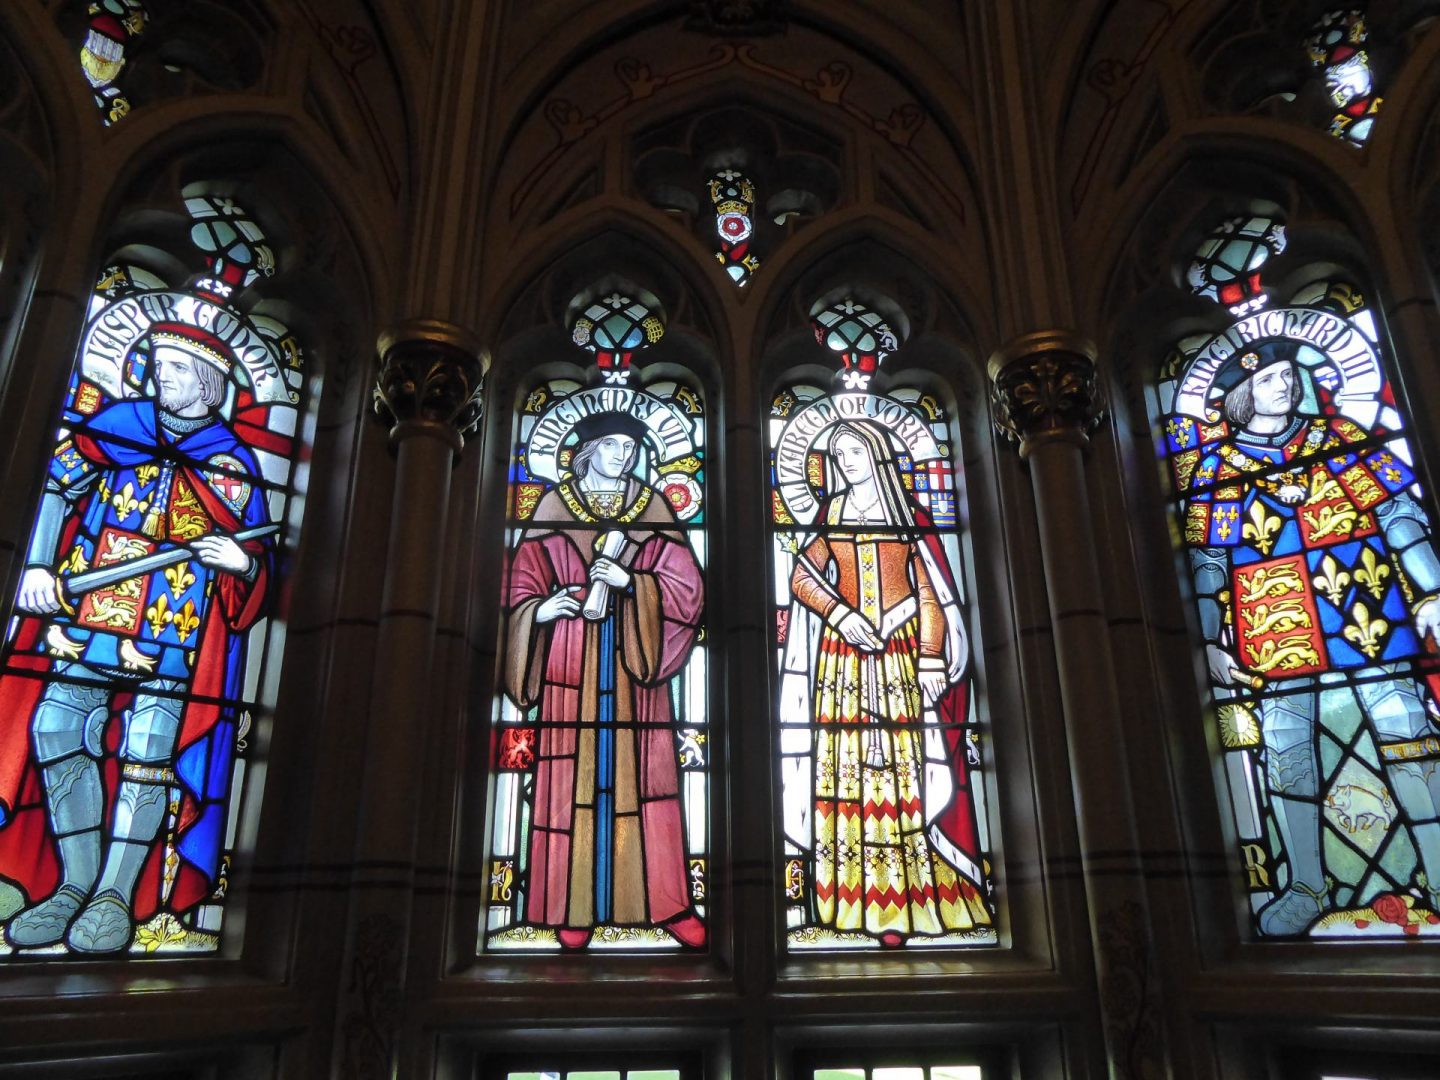 Stain glass windows in the apartments. Featuring figures from British history.